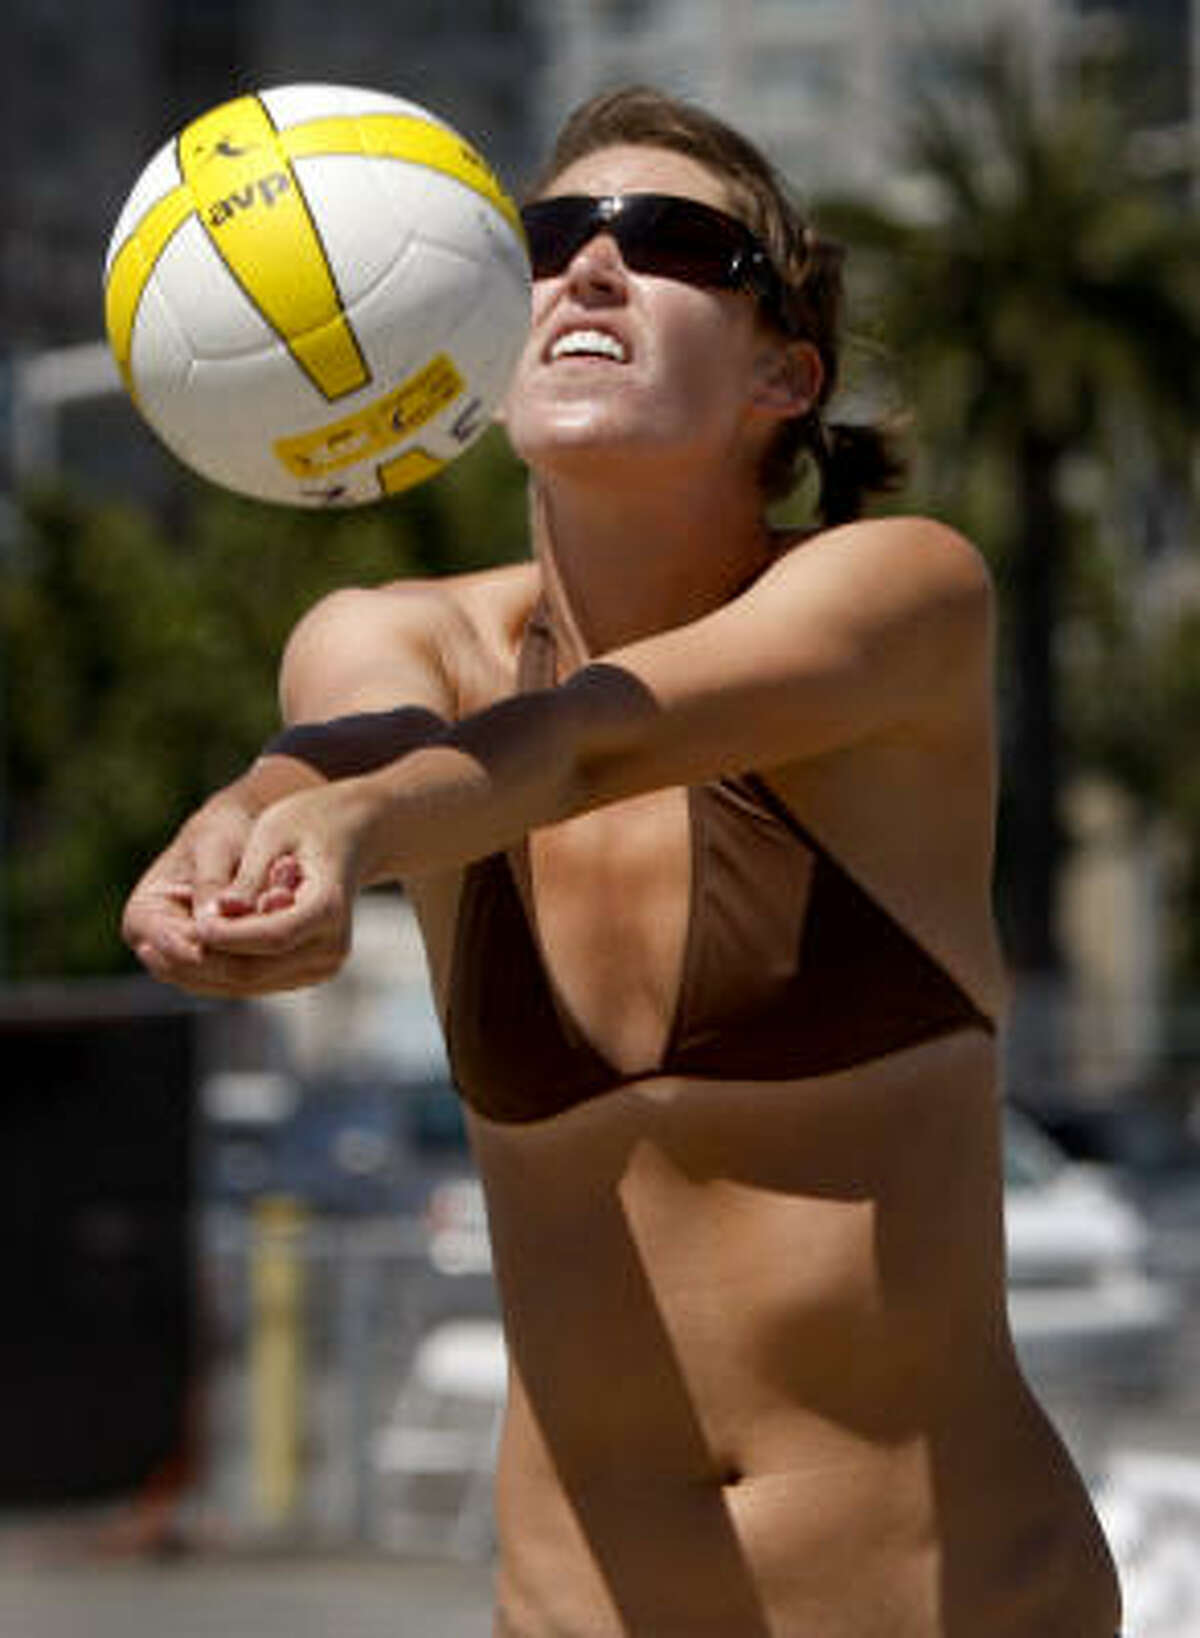 Kyra Lancon sets up her partner Ashley Regner for a shot in a second round match of the AVPNext Championship Cup beach volleyball competition.